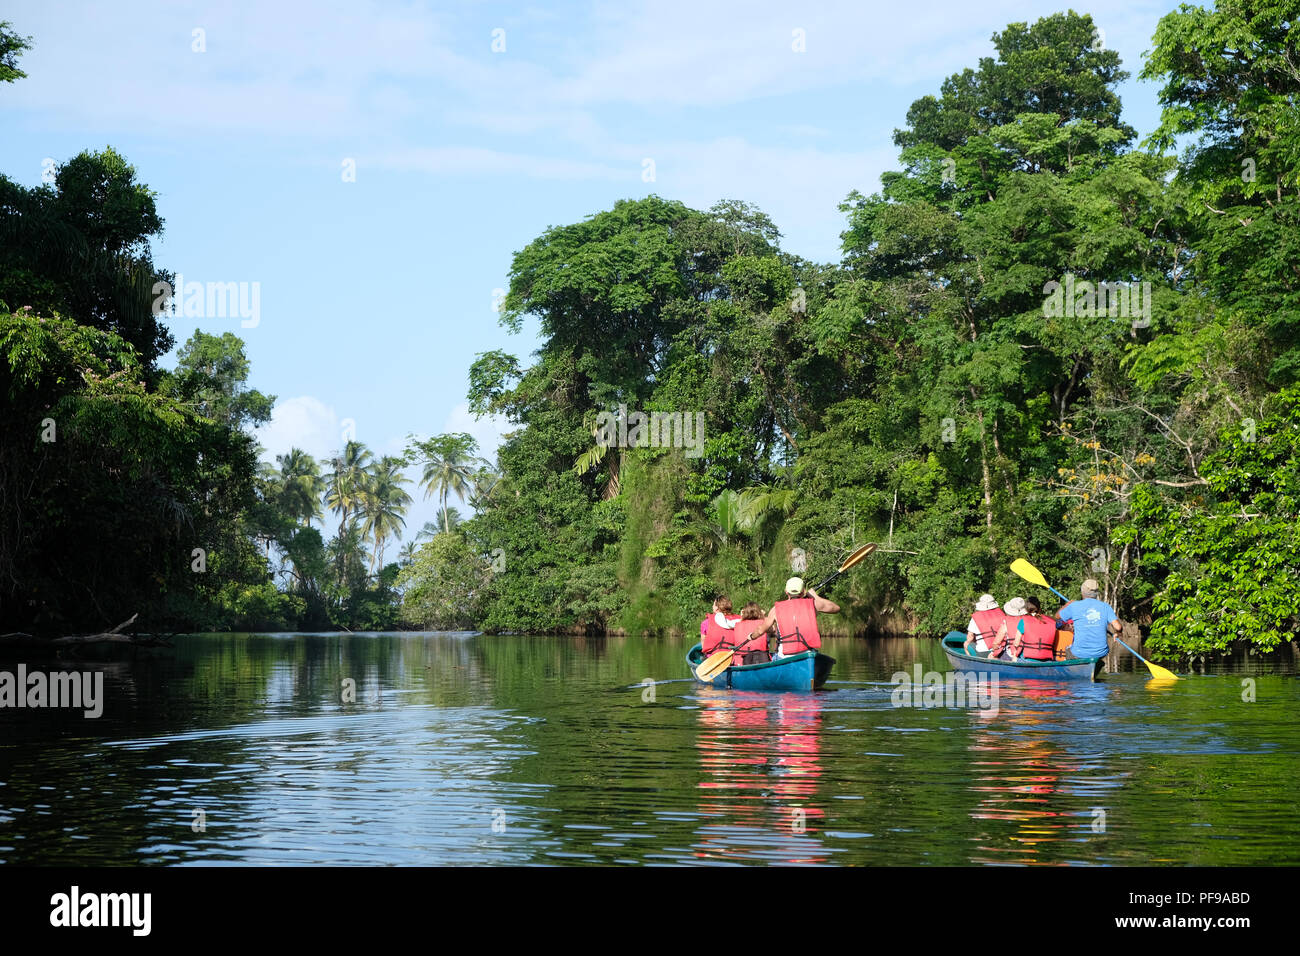 Canoe tour in tortugero - Stock Image